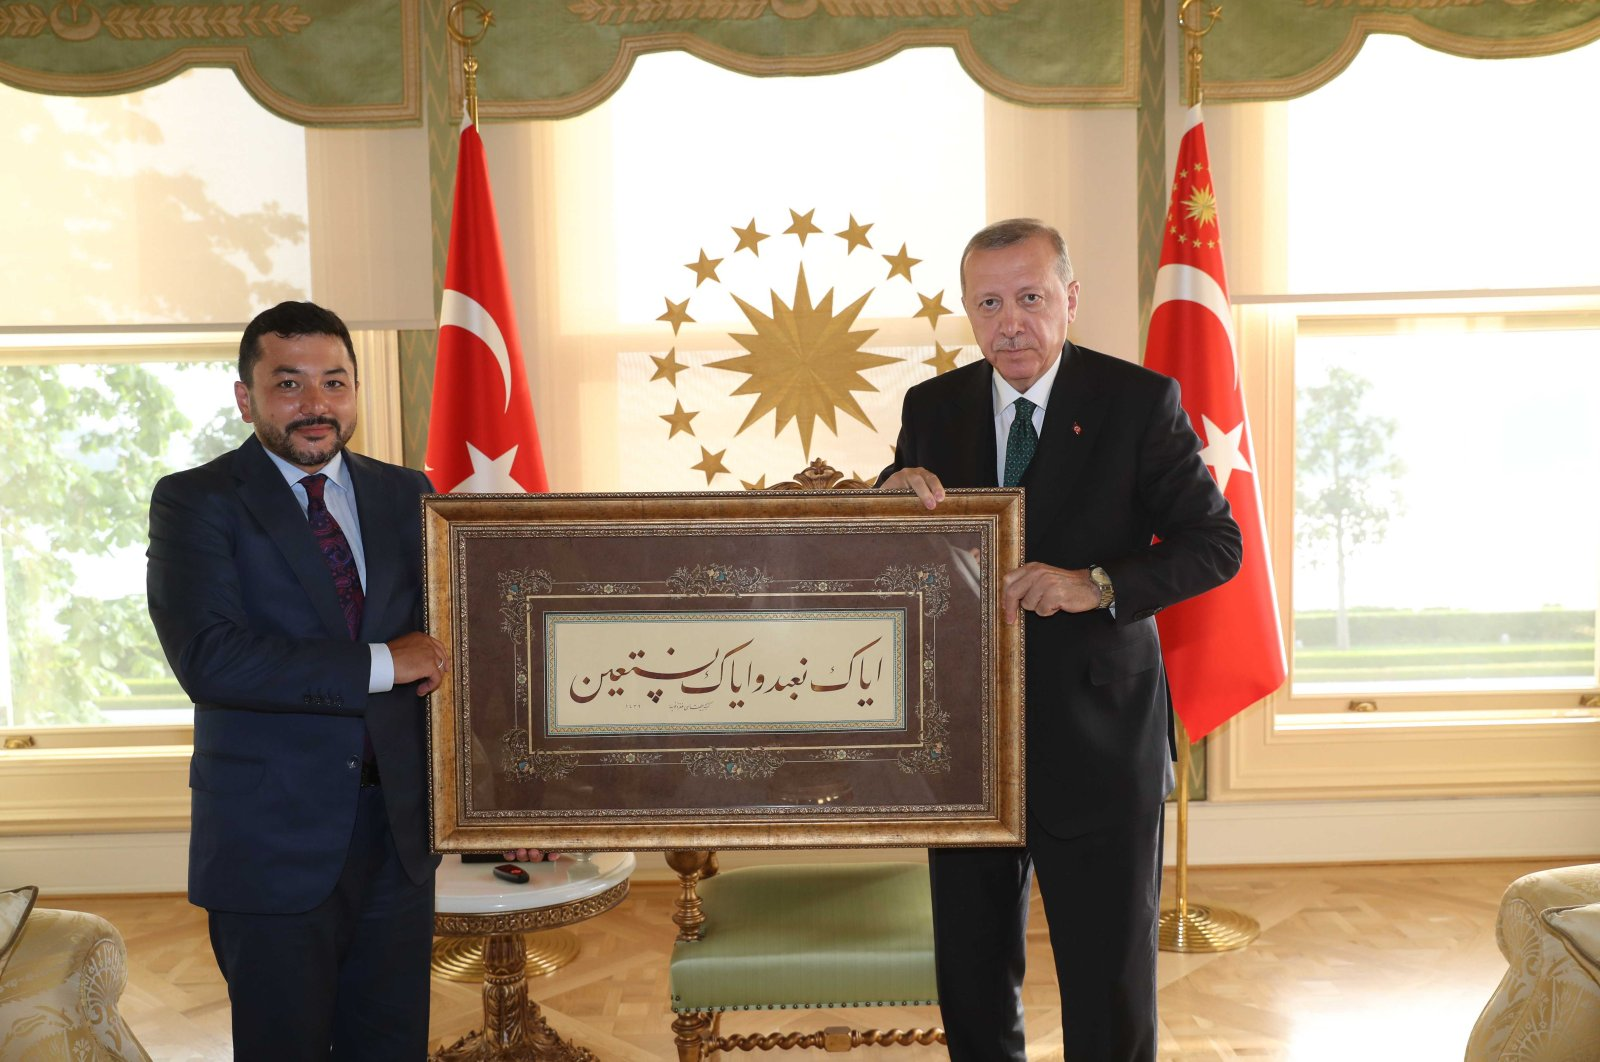 Islamic Cooperation Youth Forum (ICYF) President Taha Ayhan at a meeting with Turkish President Recep Tayyip Erdoğan. (Photo courtesy of ICFY)